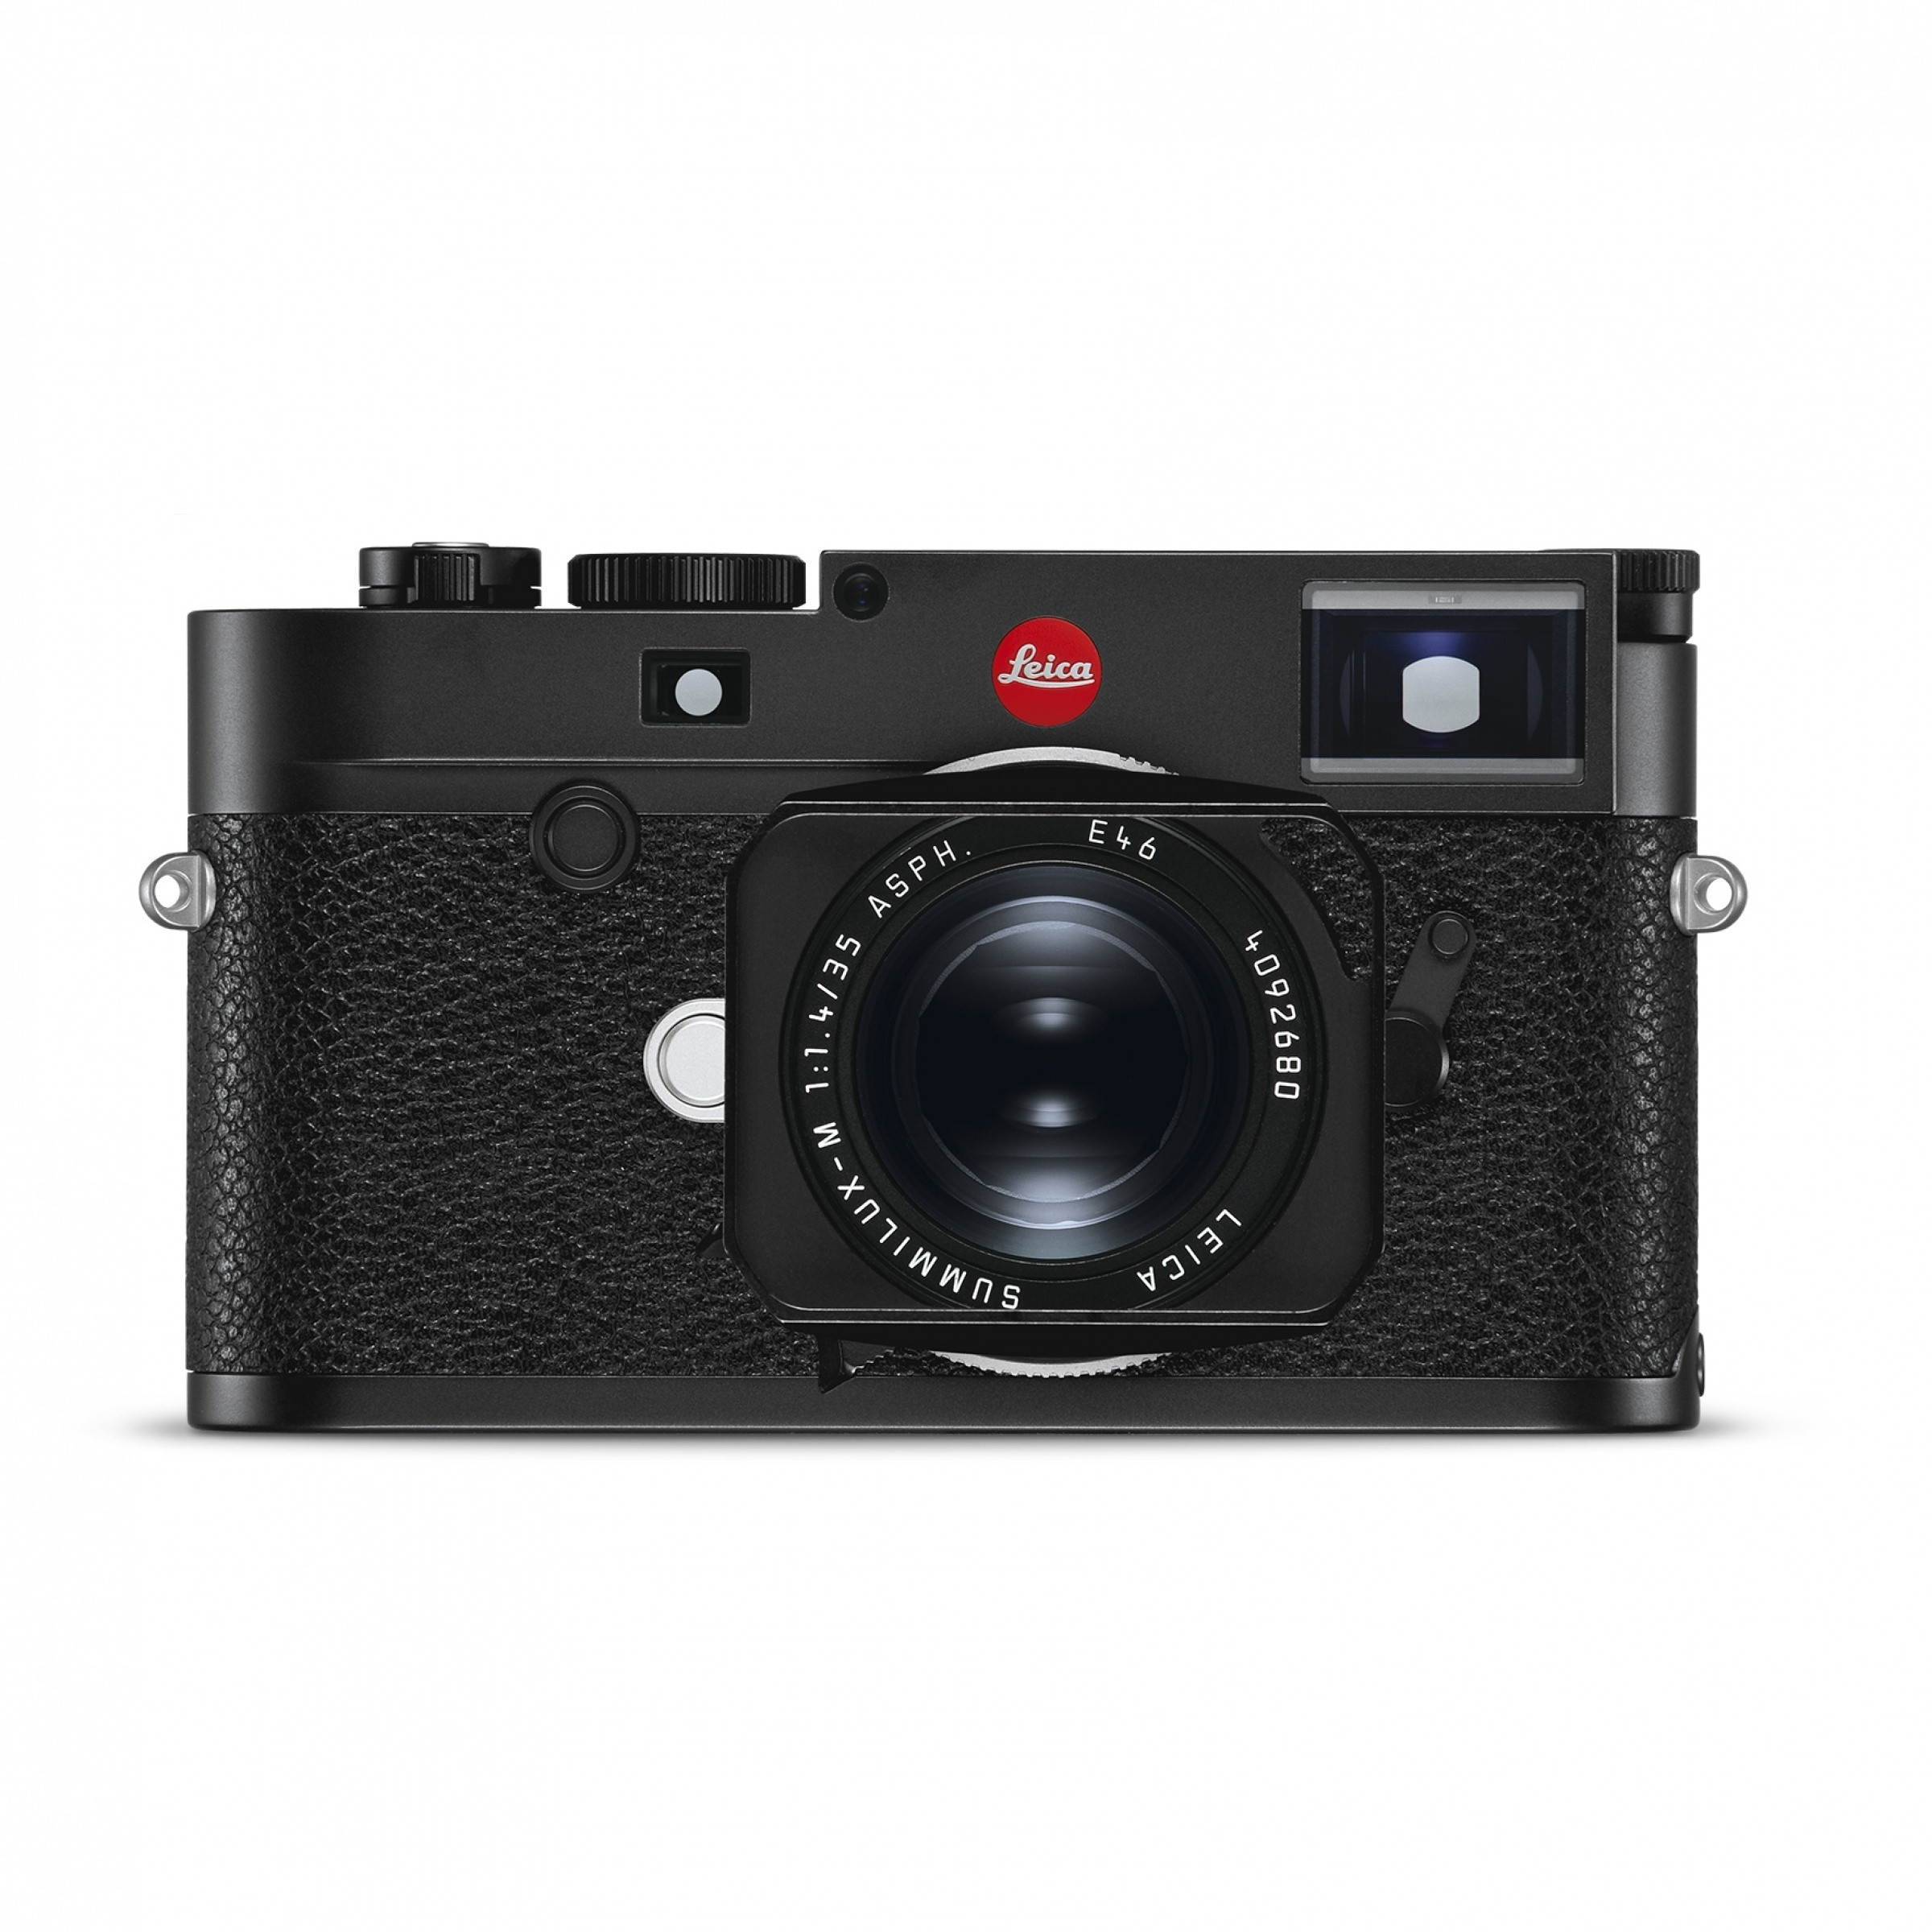 Leica-M10-R-body-black-chrome-finish